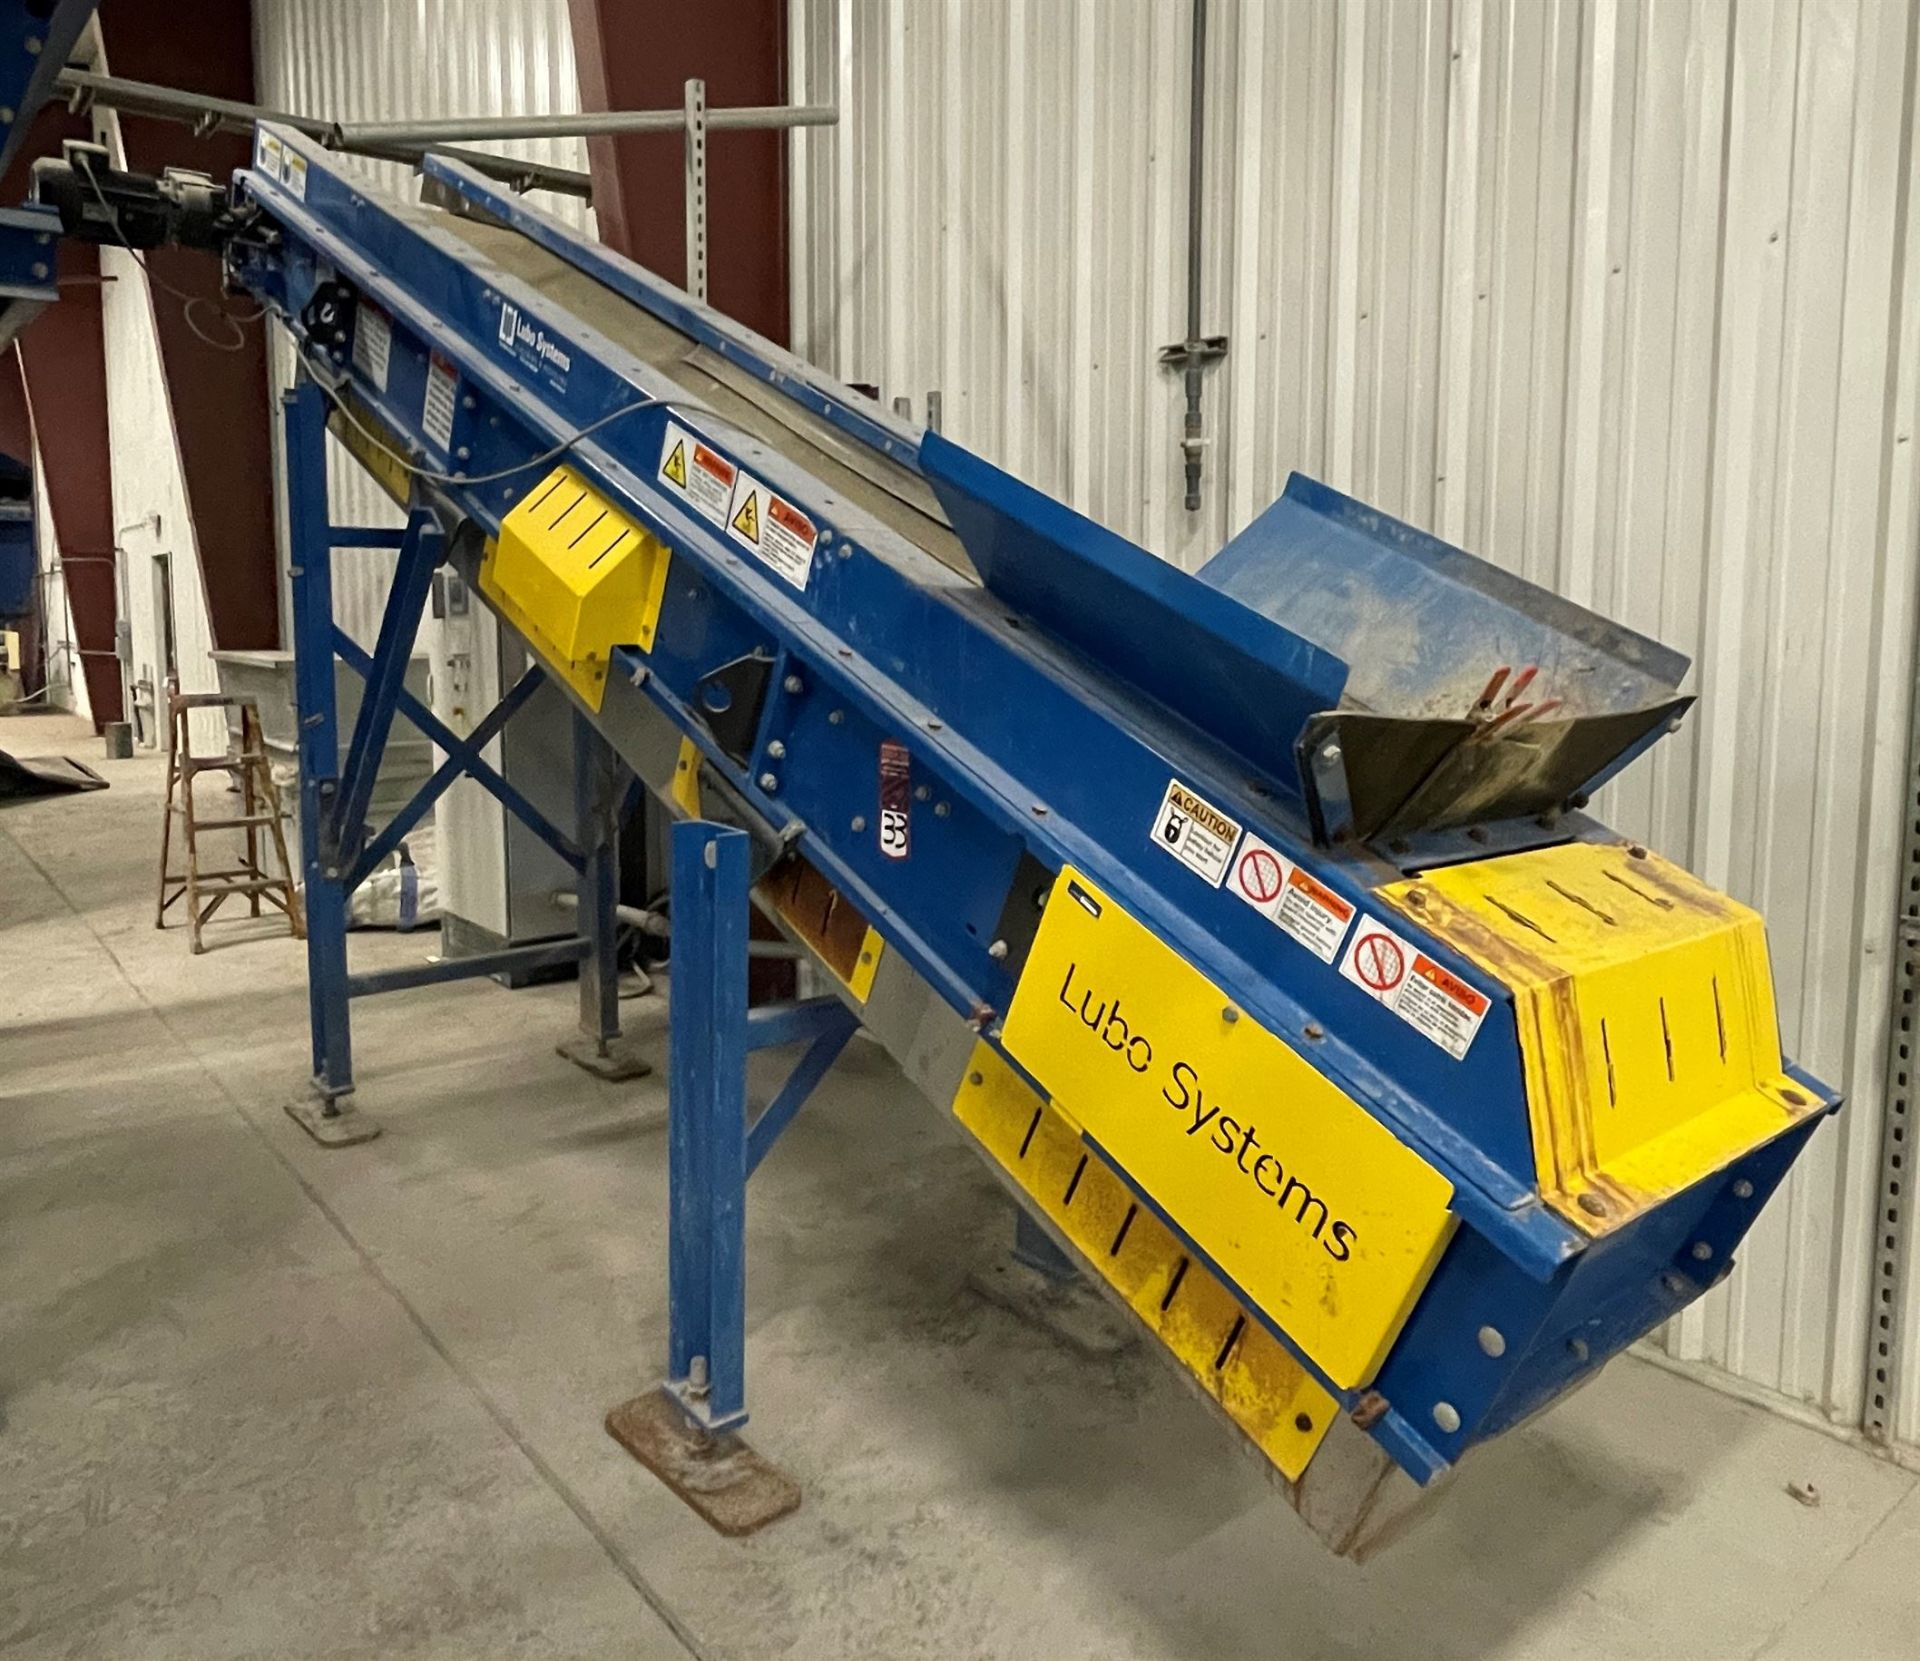 2015 LUBO SYSTEMS TBL 600x4500 Inclined Belt Conveyor, s/n 800108-0230, 600mm x 4500mm, SEW 3.7 kW